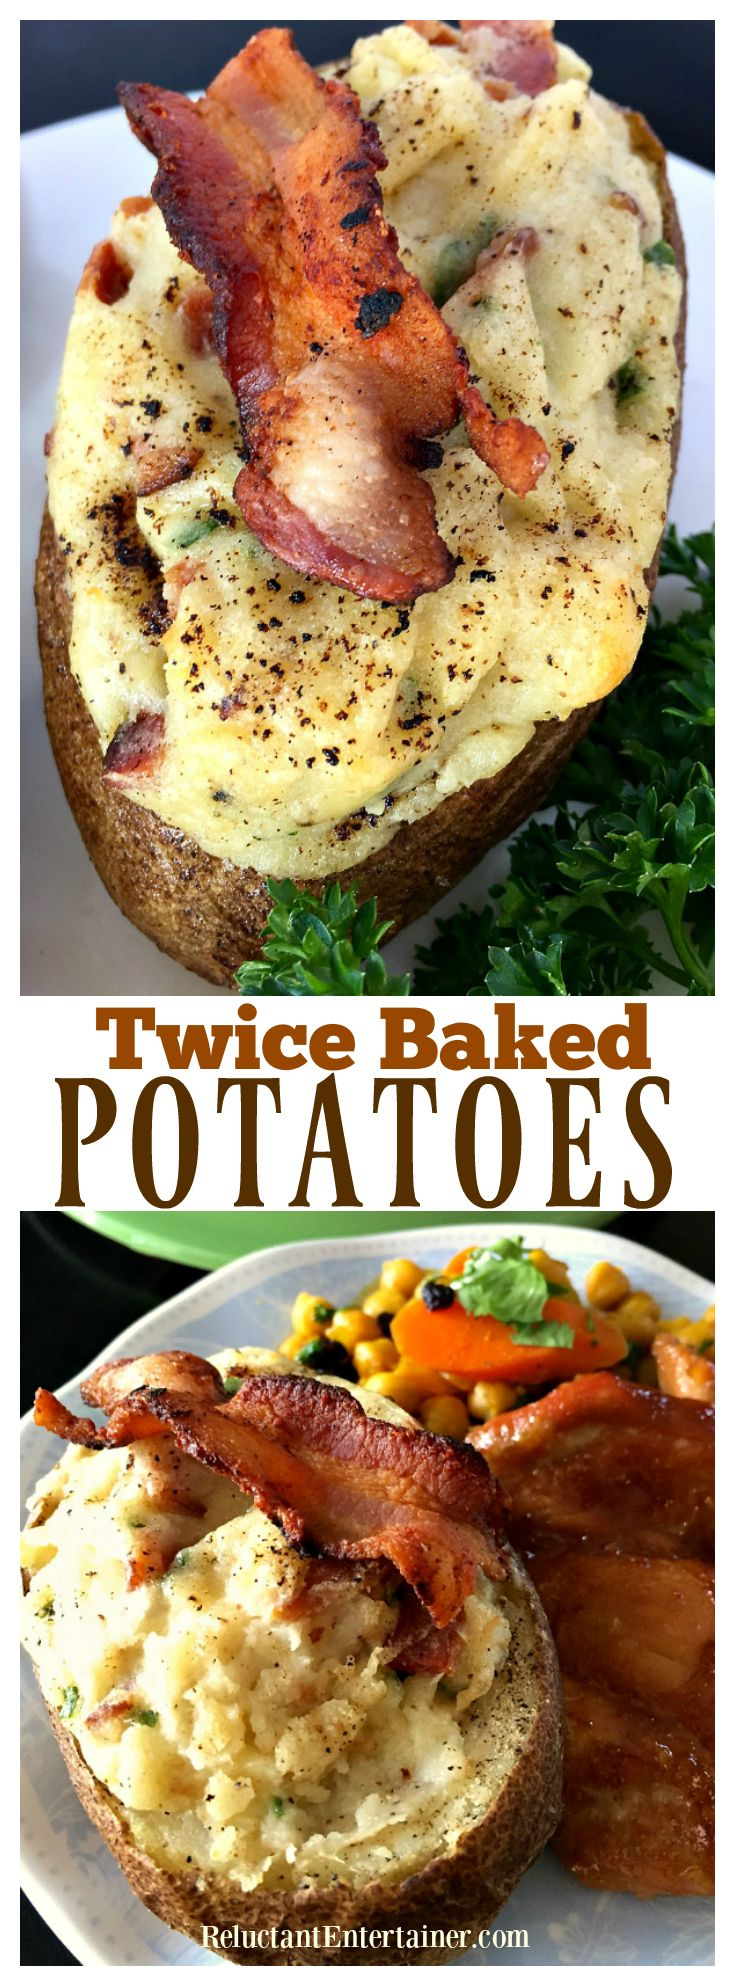 Twice-Baked Potatoes with Bacon